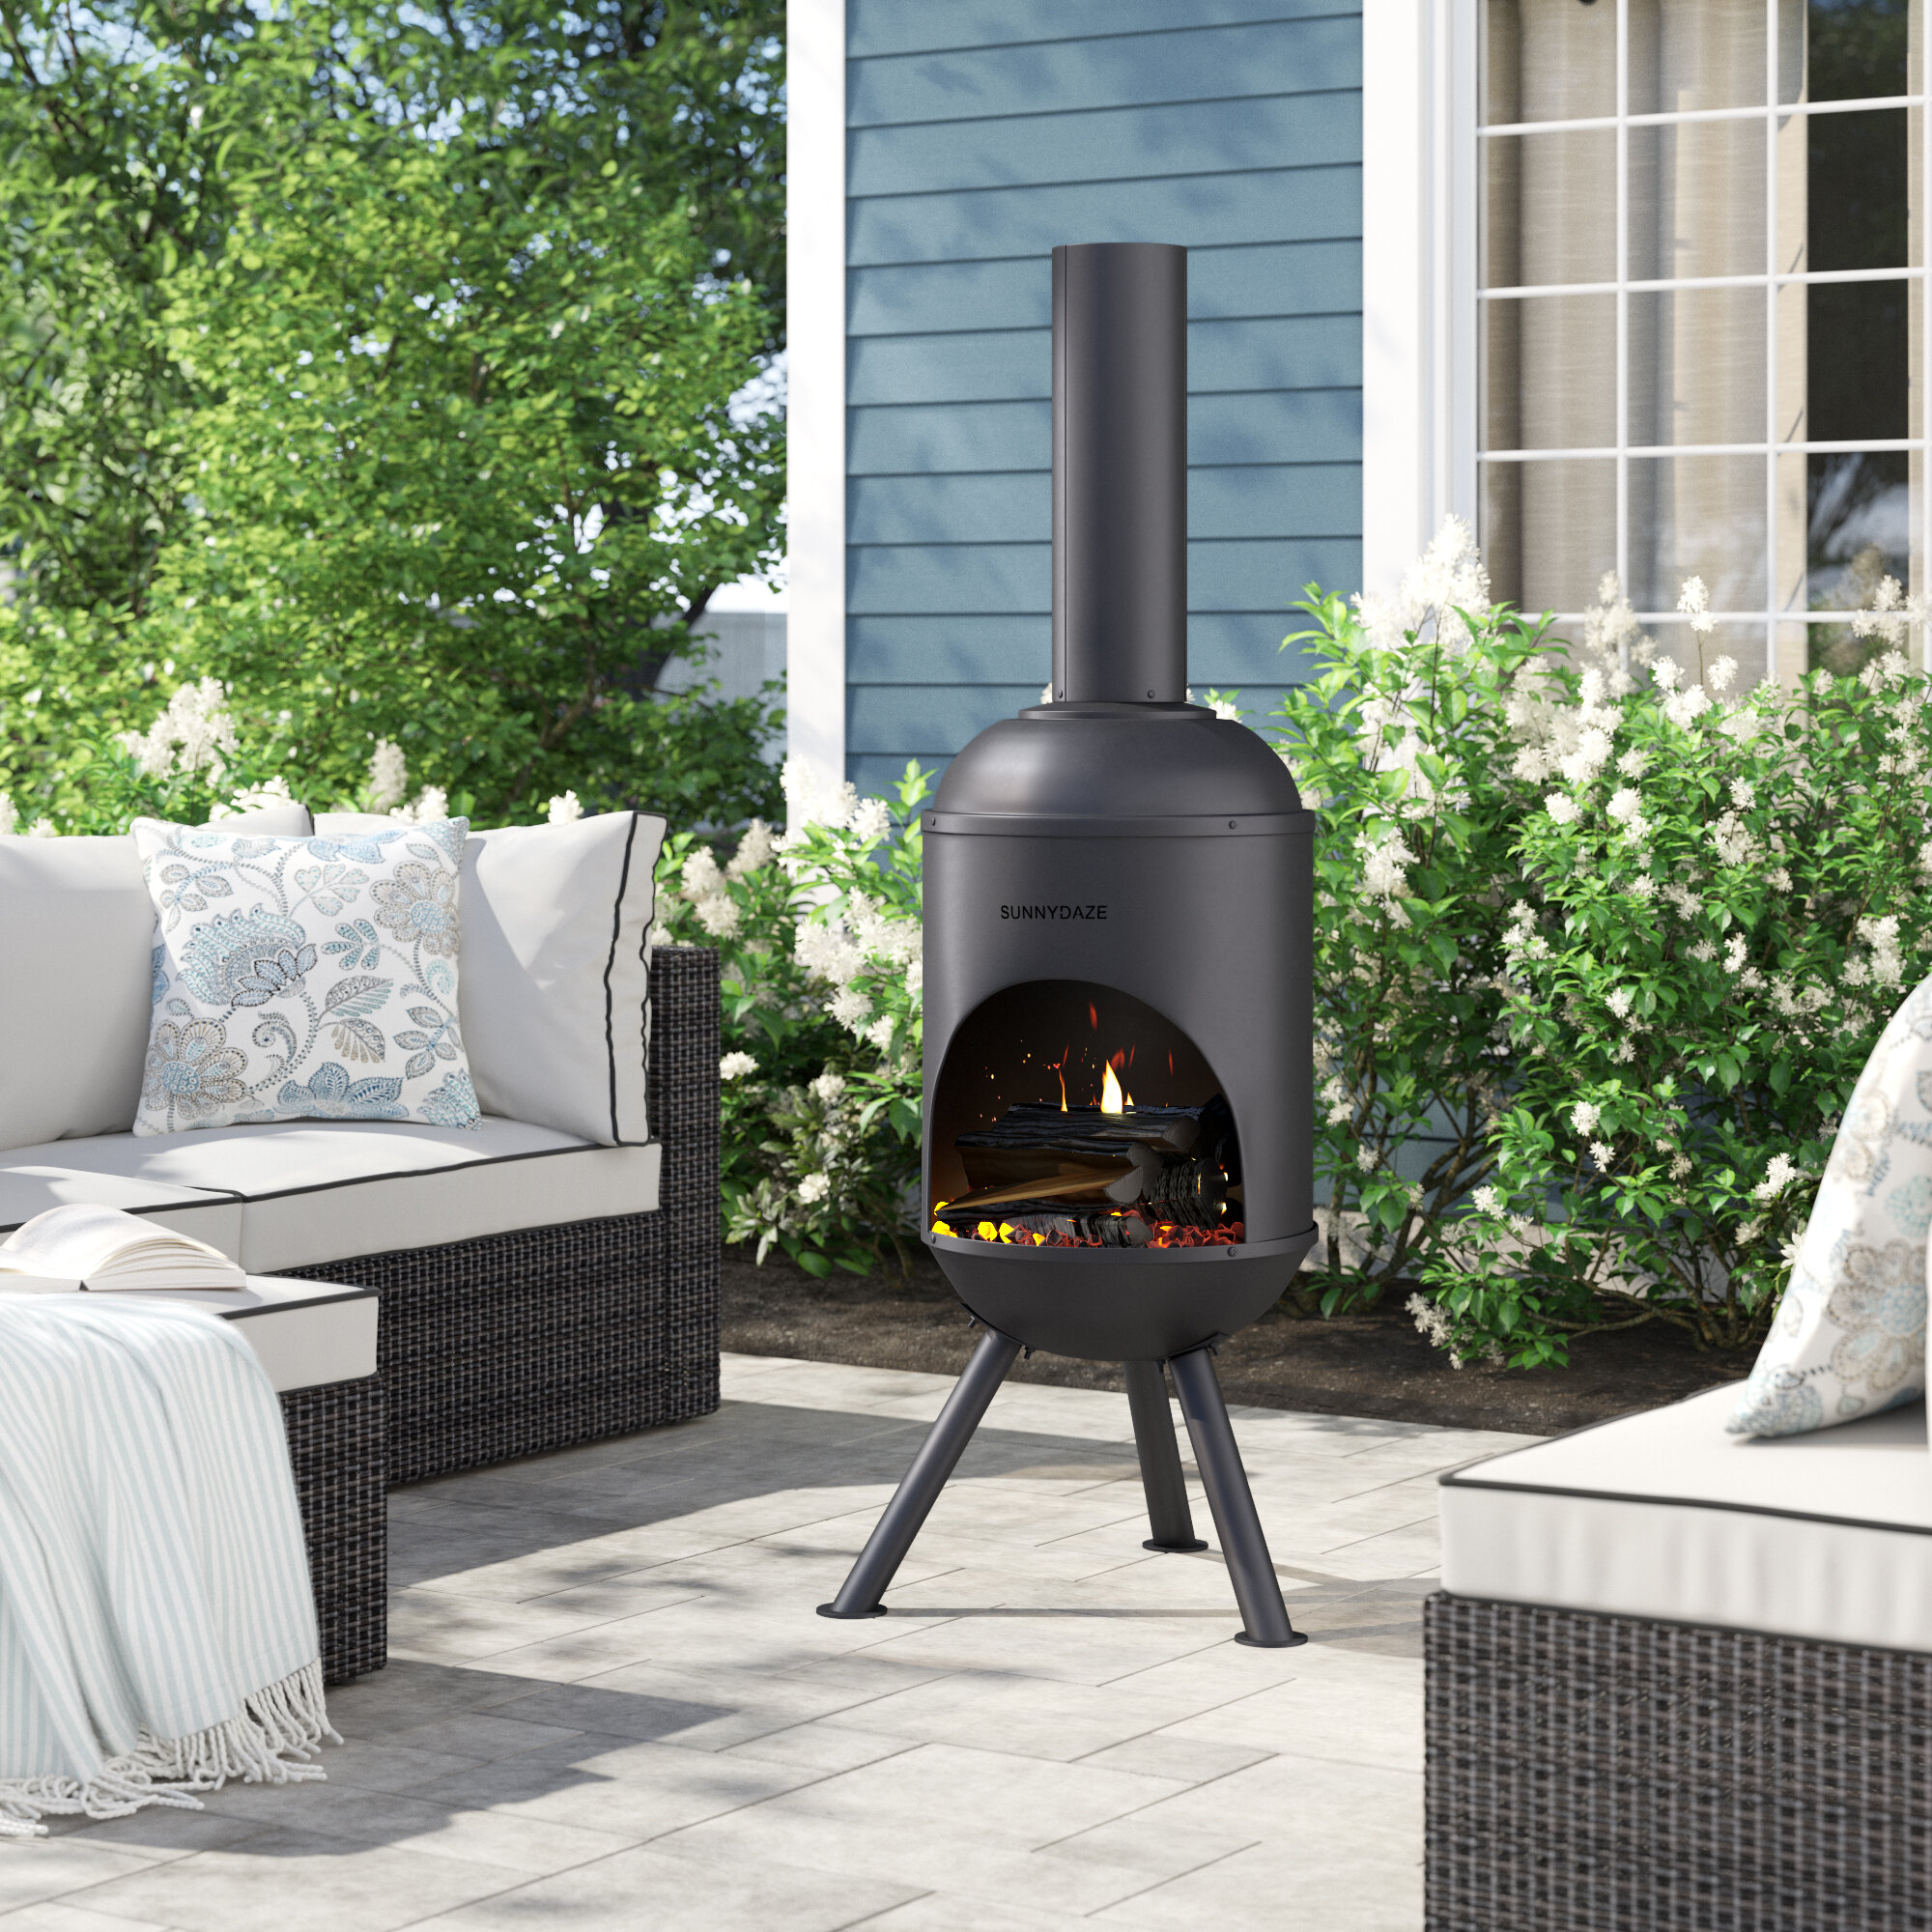 Chimineas Up To 30 Off Through 09 07 Wayfair